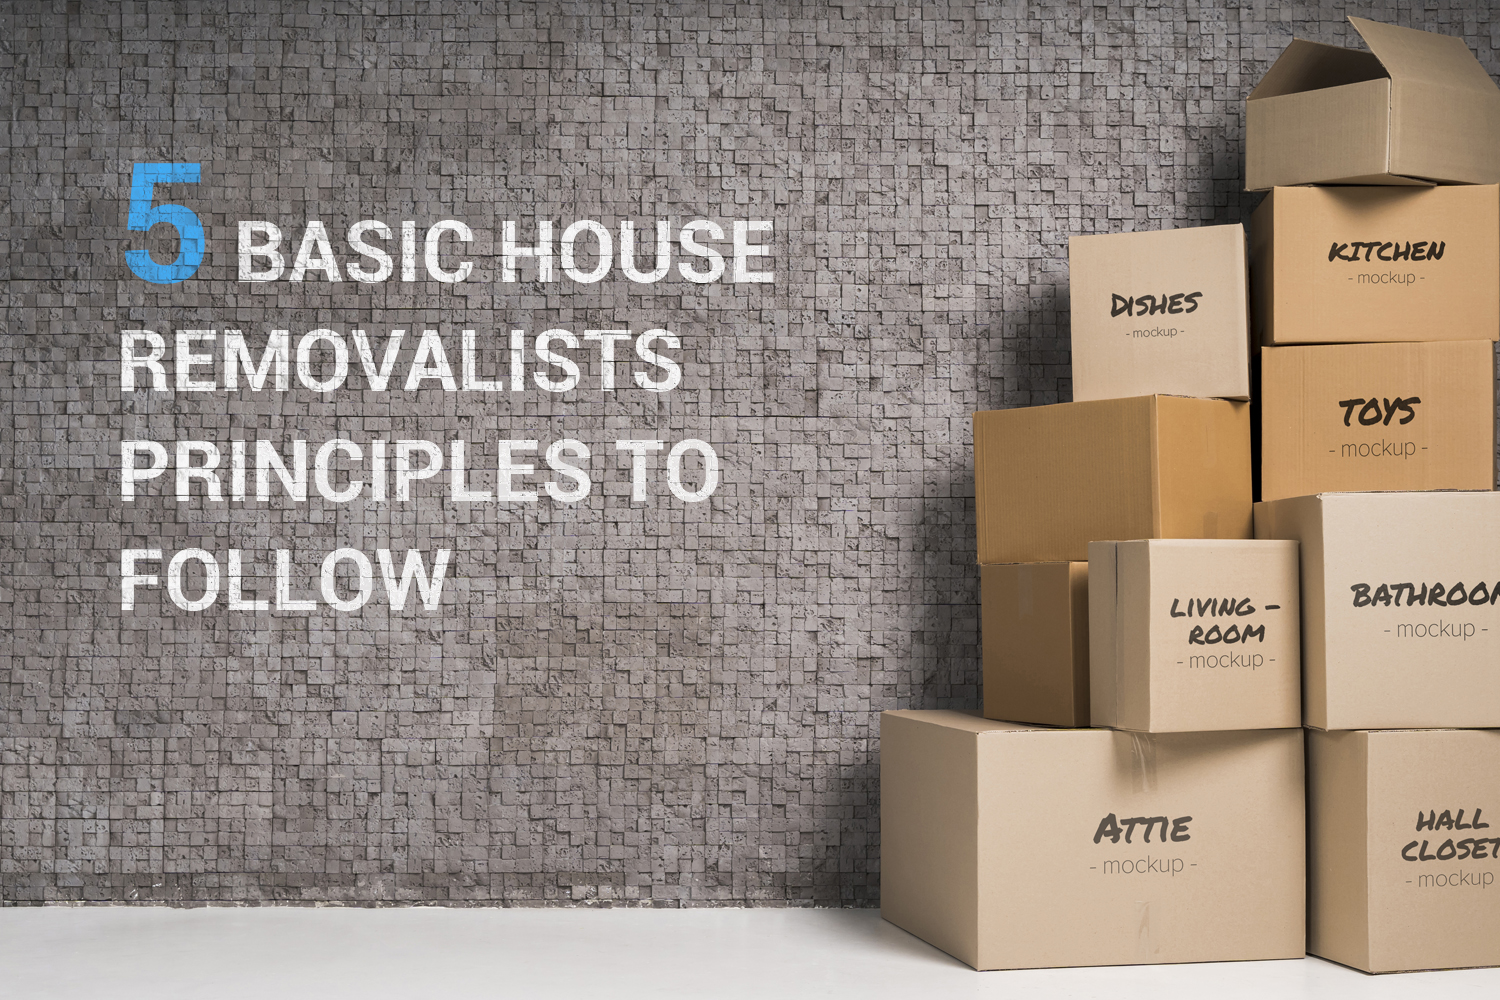 5 Basic House Removalists Principles to Follow